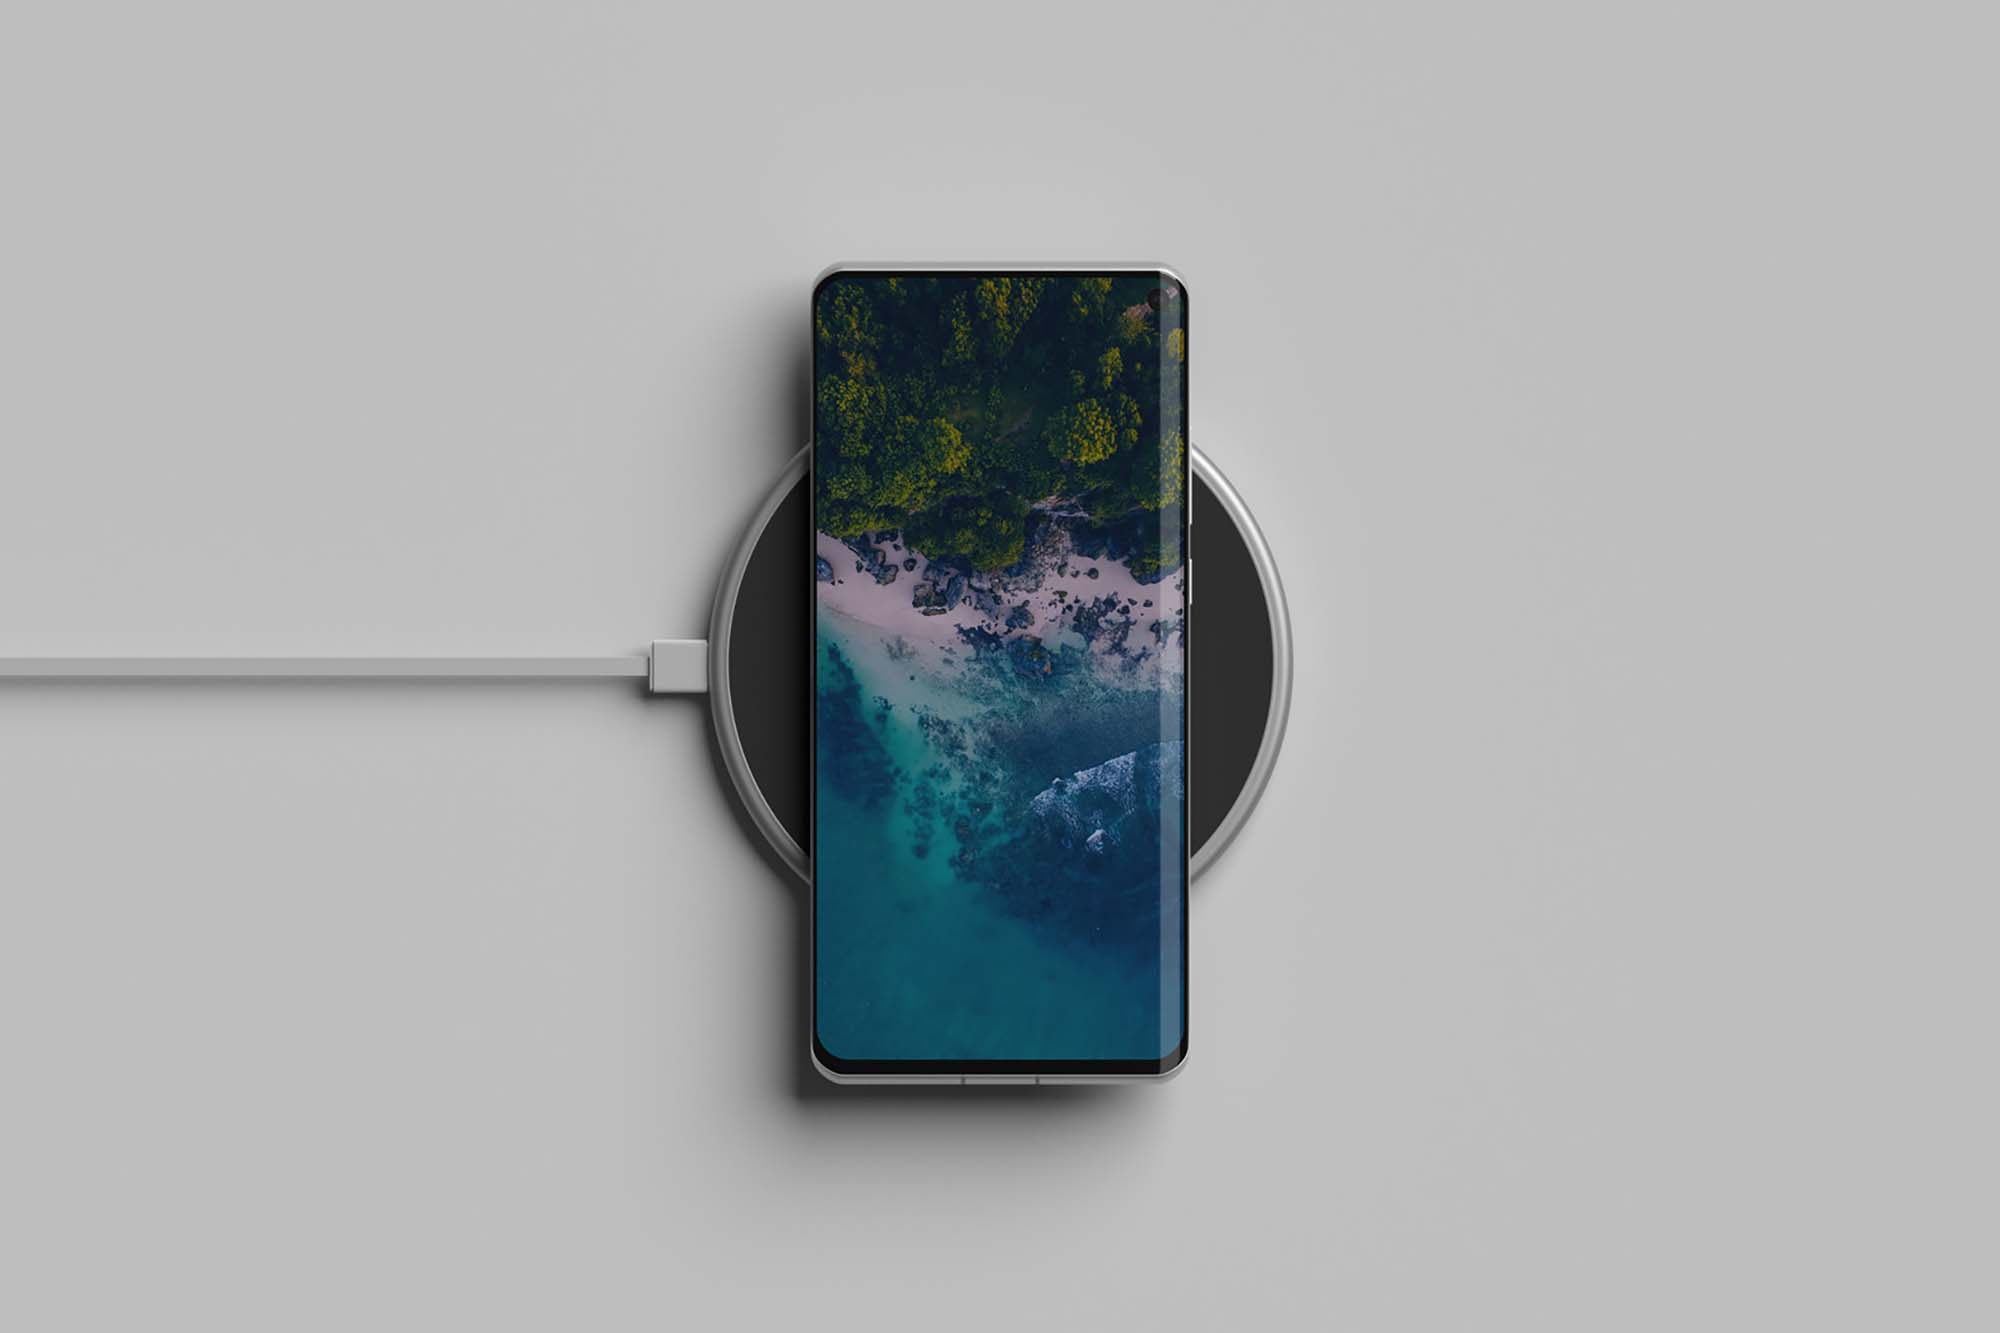 Phone on Wireless Charger Mockup 2